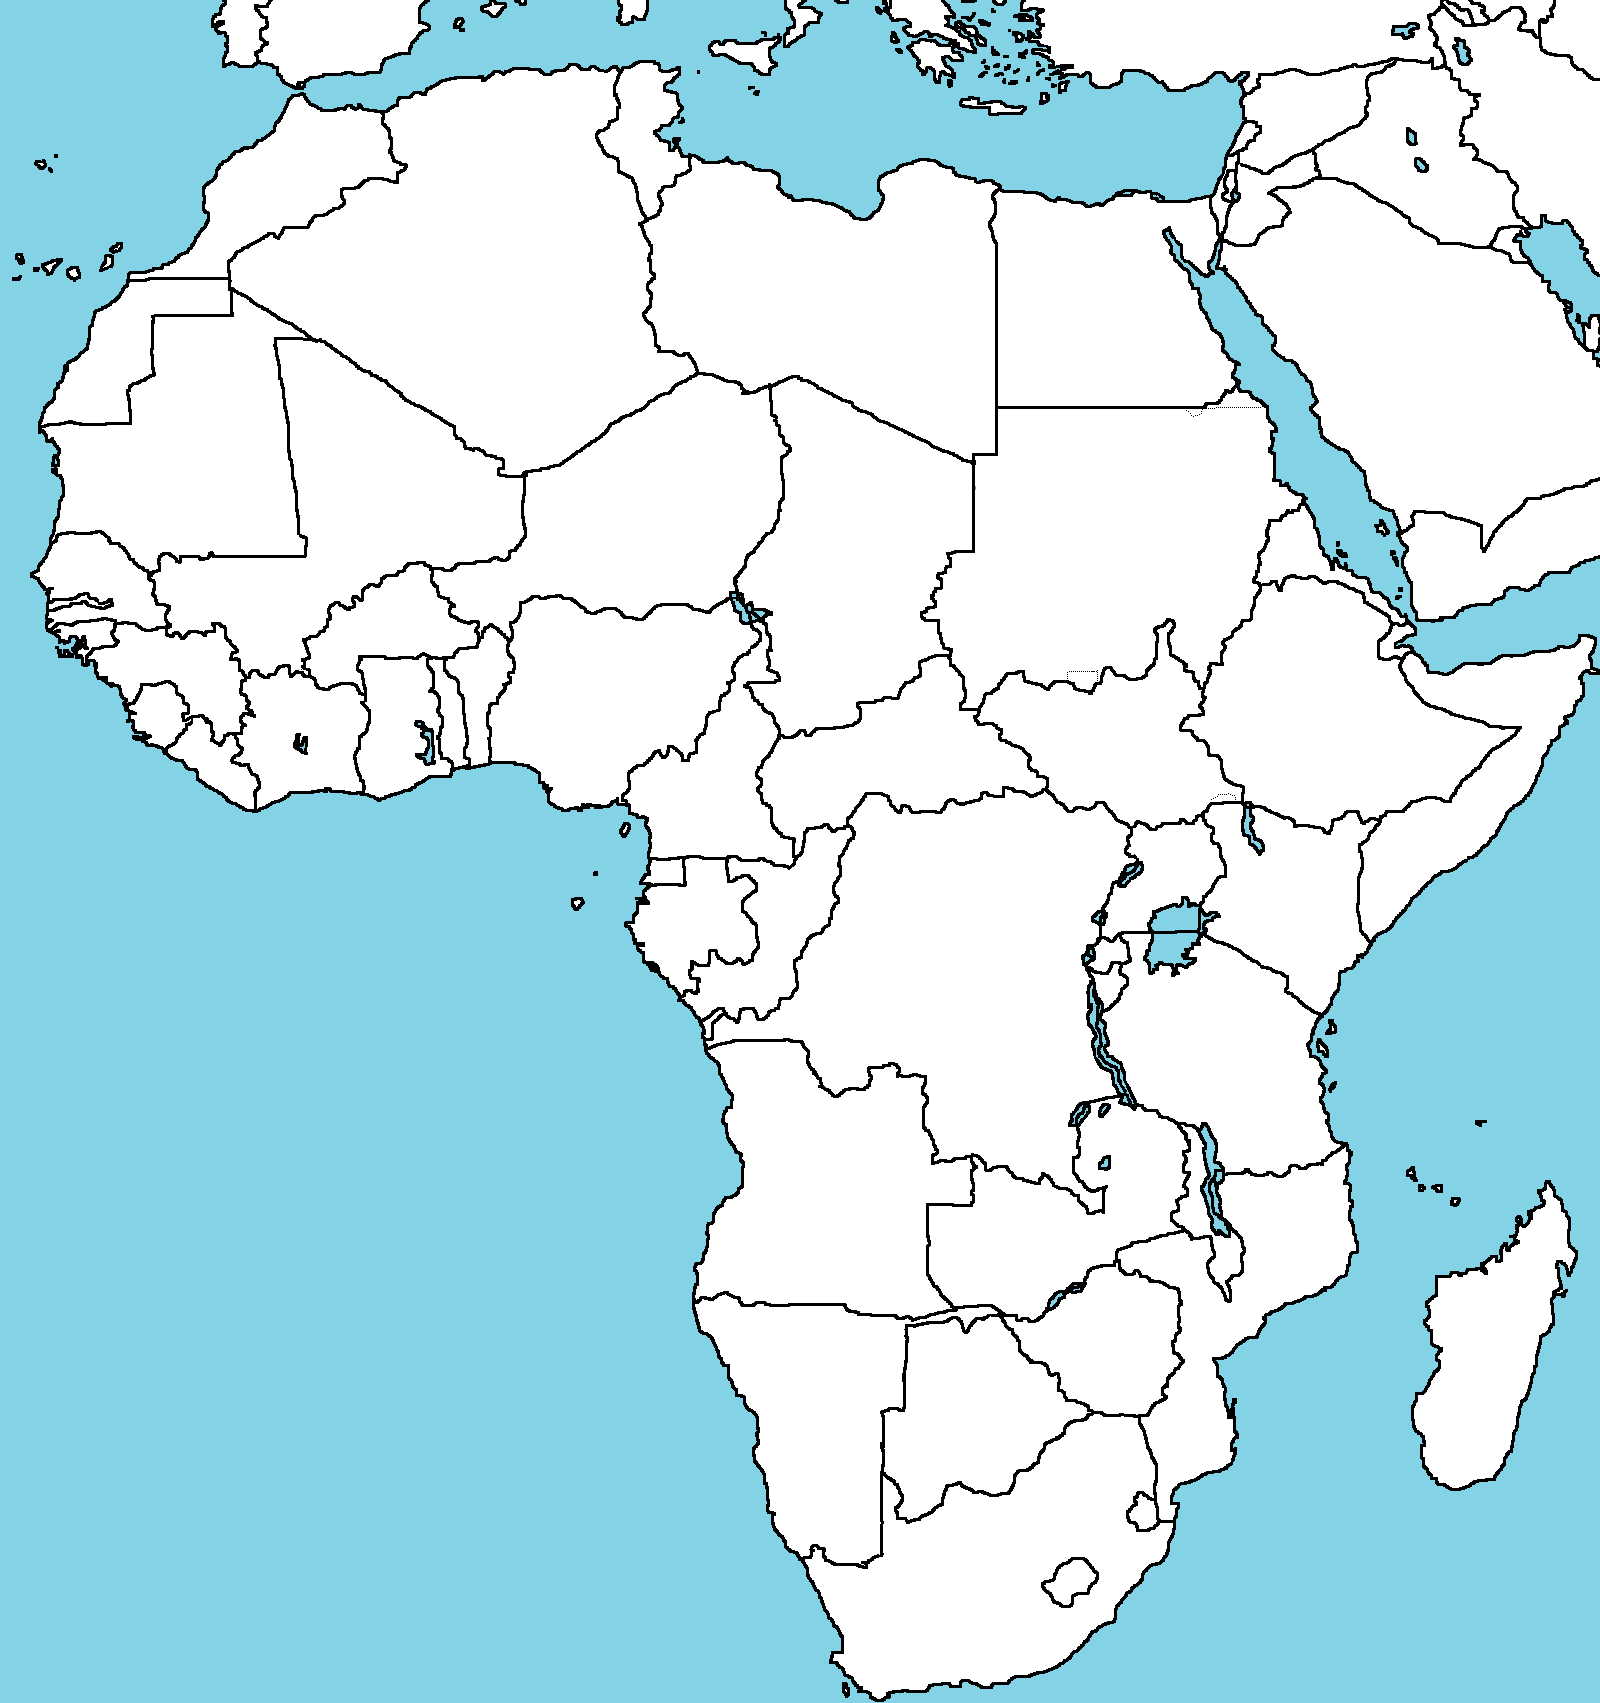 Blank Map Of Africa By AblDeGaulle On DeviantArt - Empty map of africa